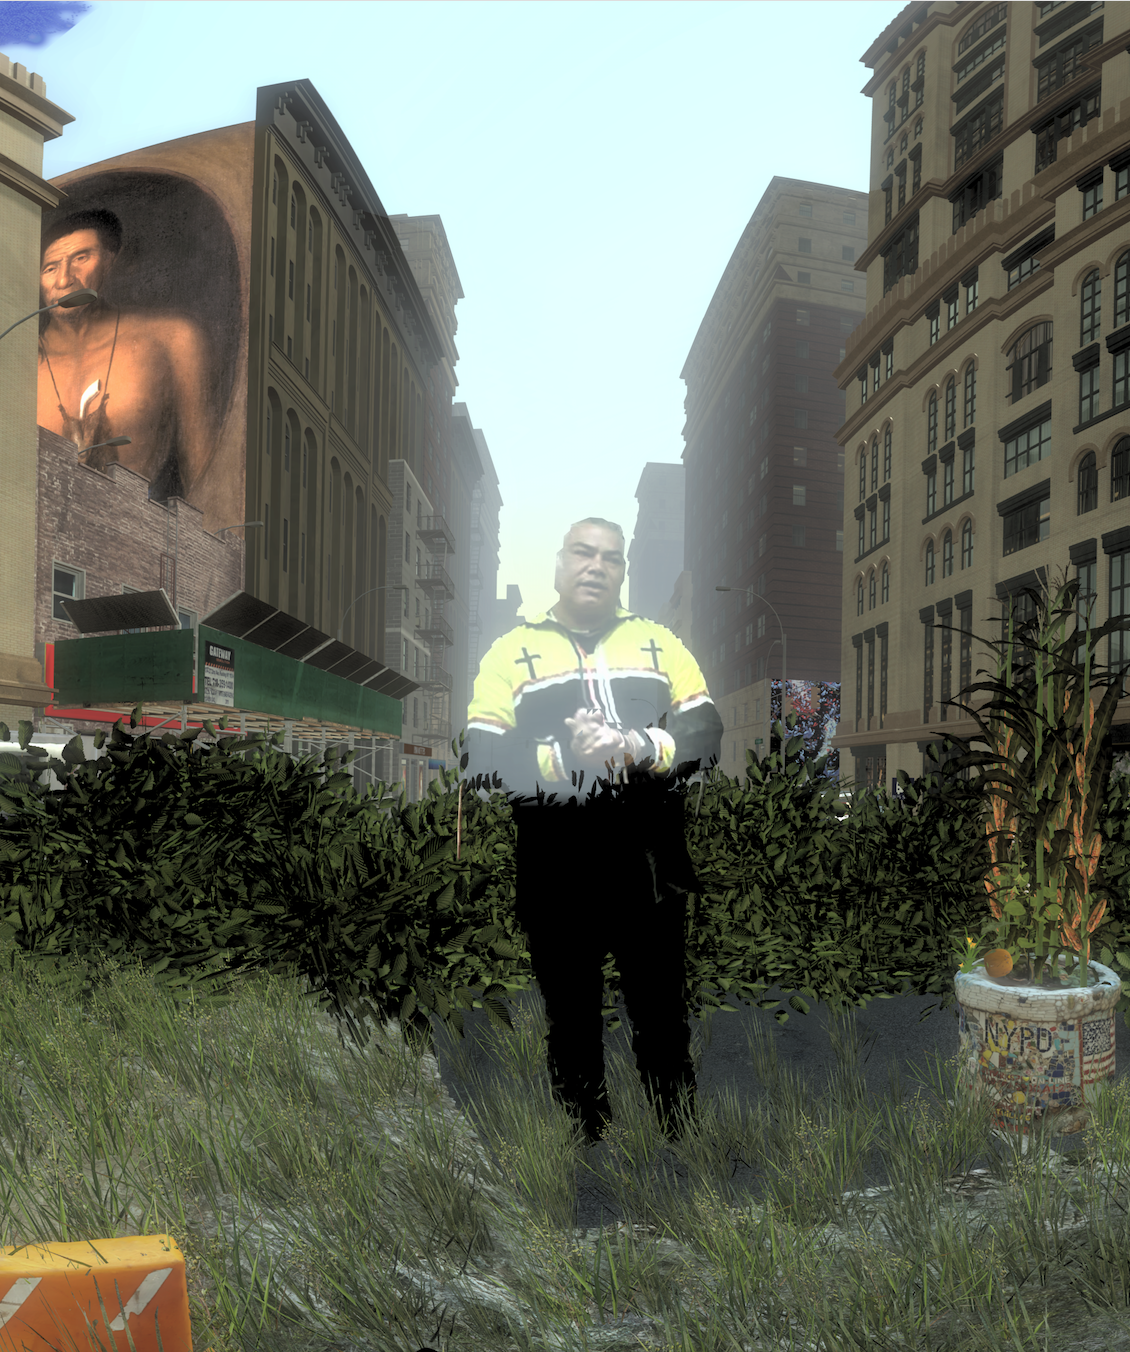 Screenshot from  Mannahatta VR. In the center is a 180-degree scan of Chief Vincent Mann, Turtle Clan Chief of the Ramapough Lunaape Nation speaking about Broadway from his cultural perspective. In the background is a painting by Gustavus Hesselius of Tishcohan, Lenape sachem from present-day Pennsylvania.